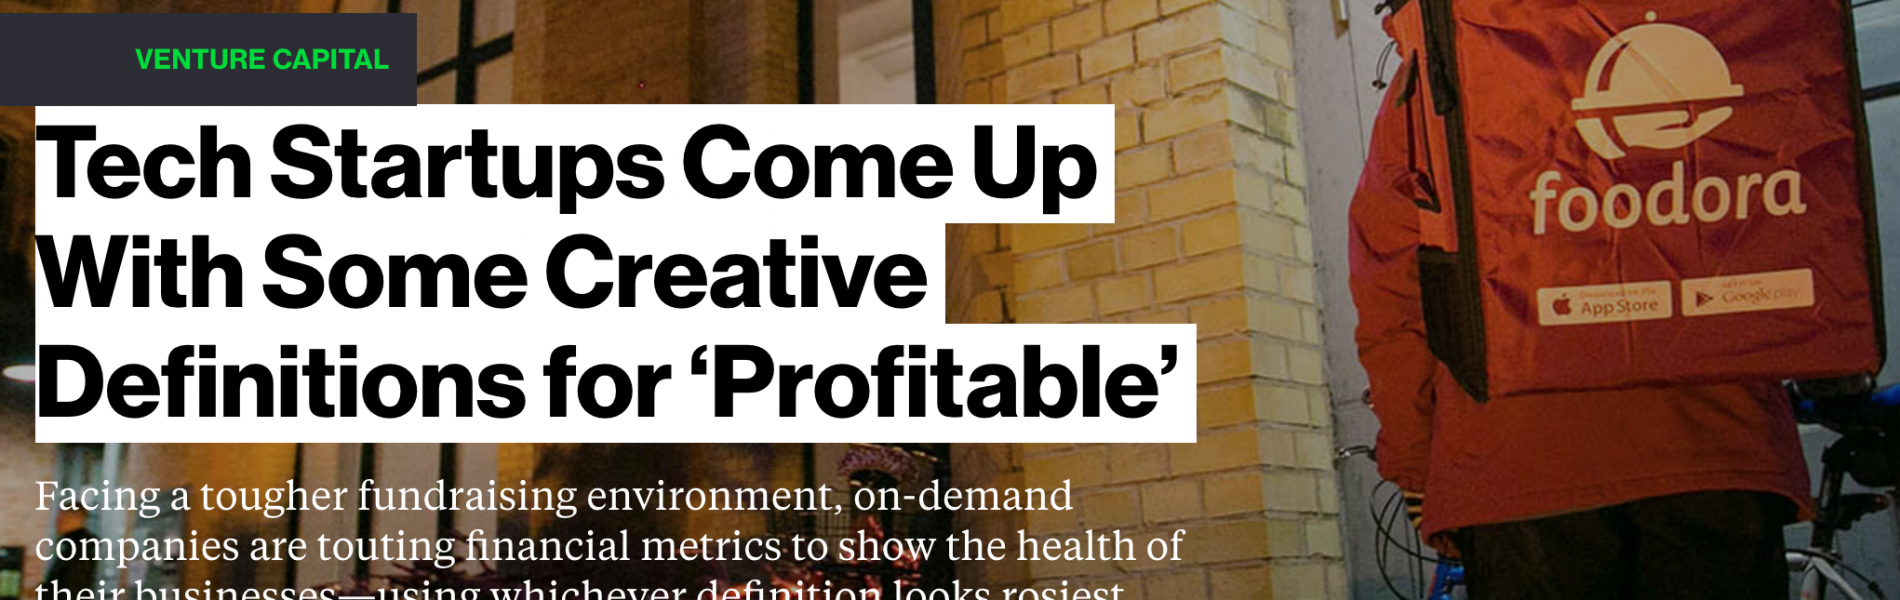 Tech Startups Come Up With Some Creative Definitions for 'Profitable'